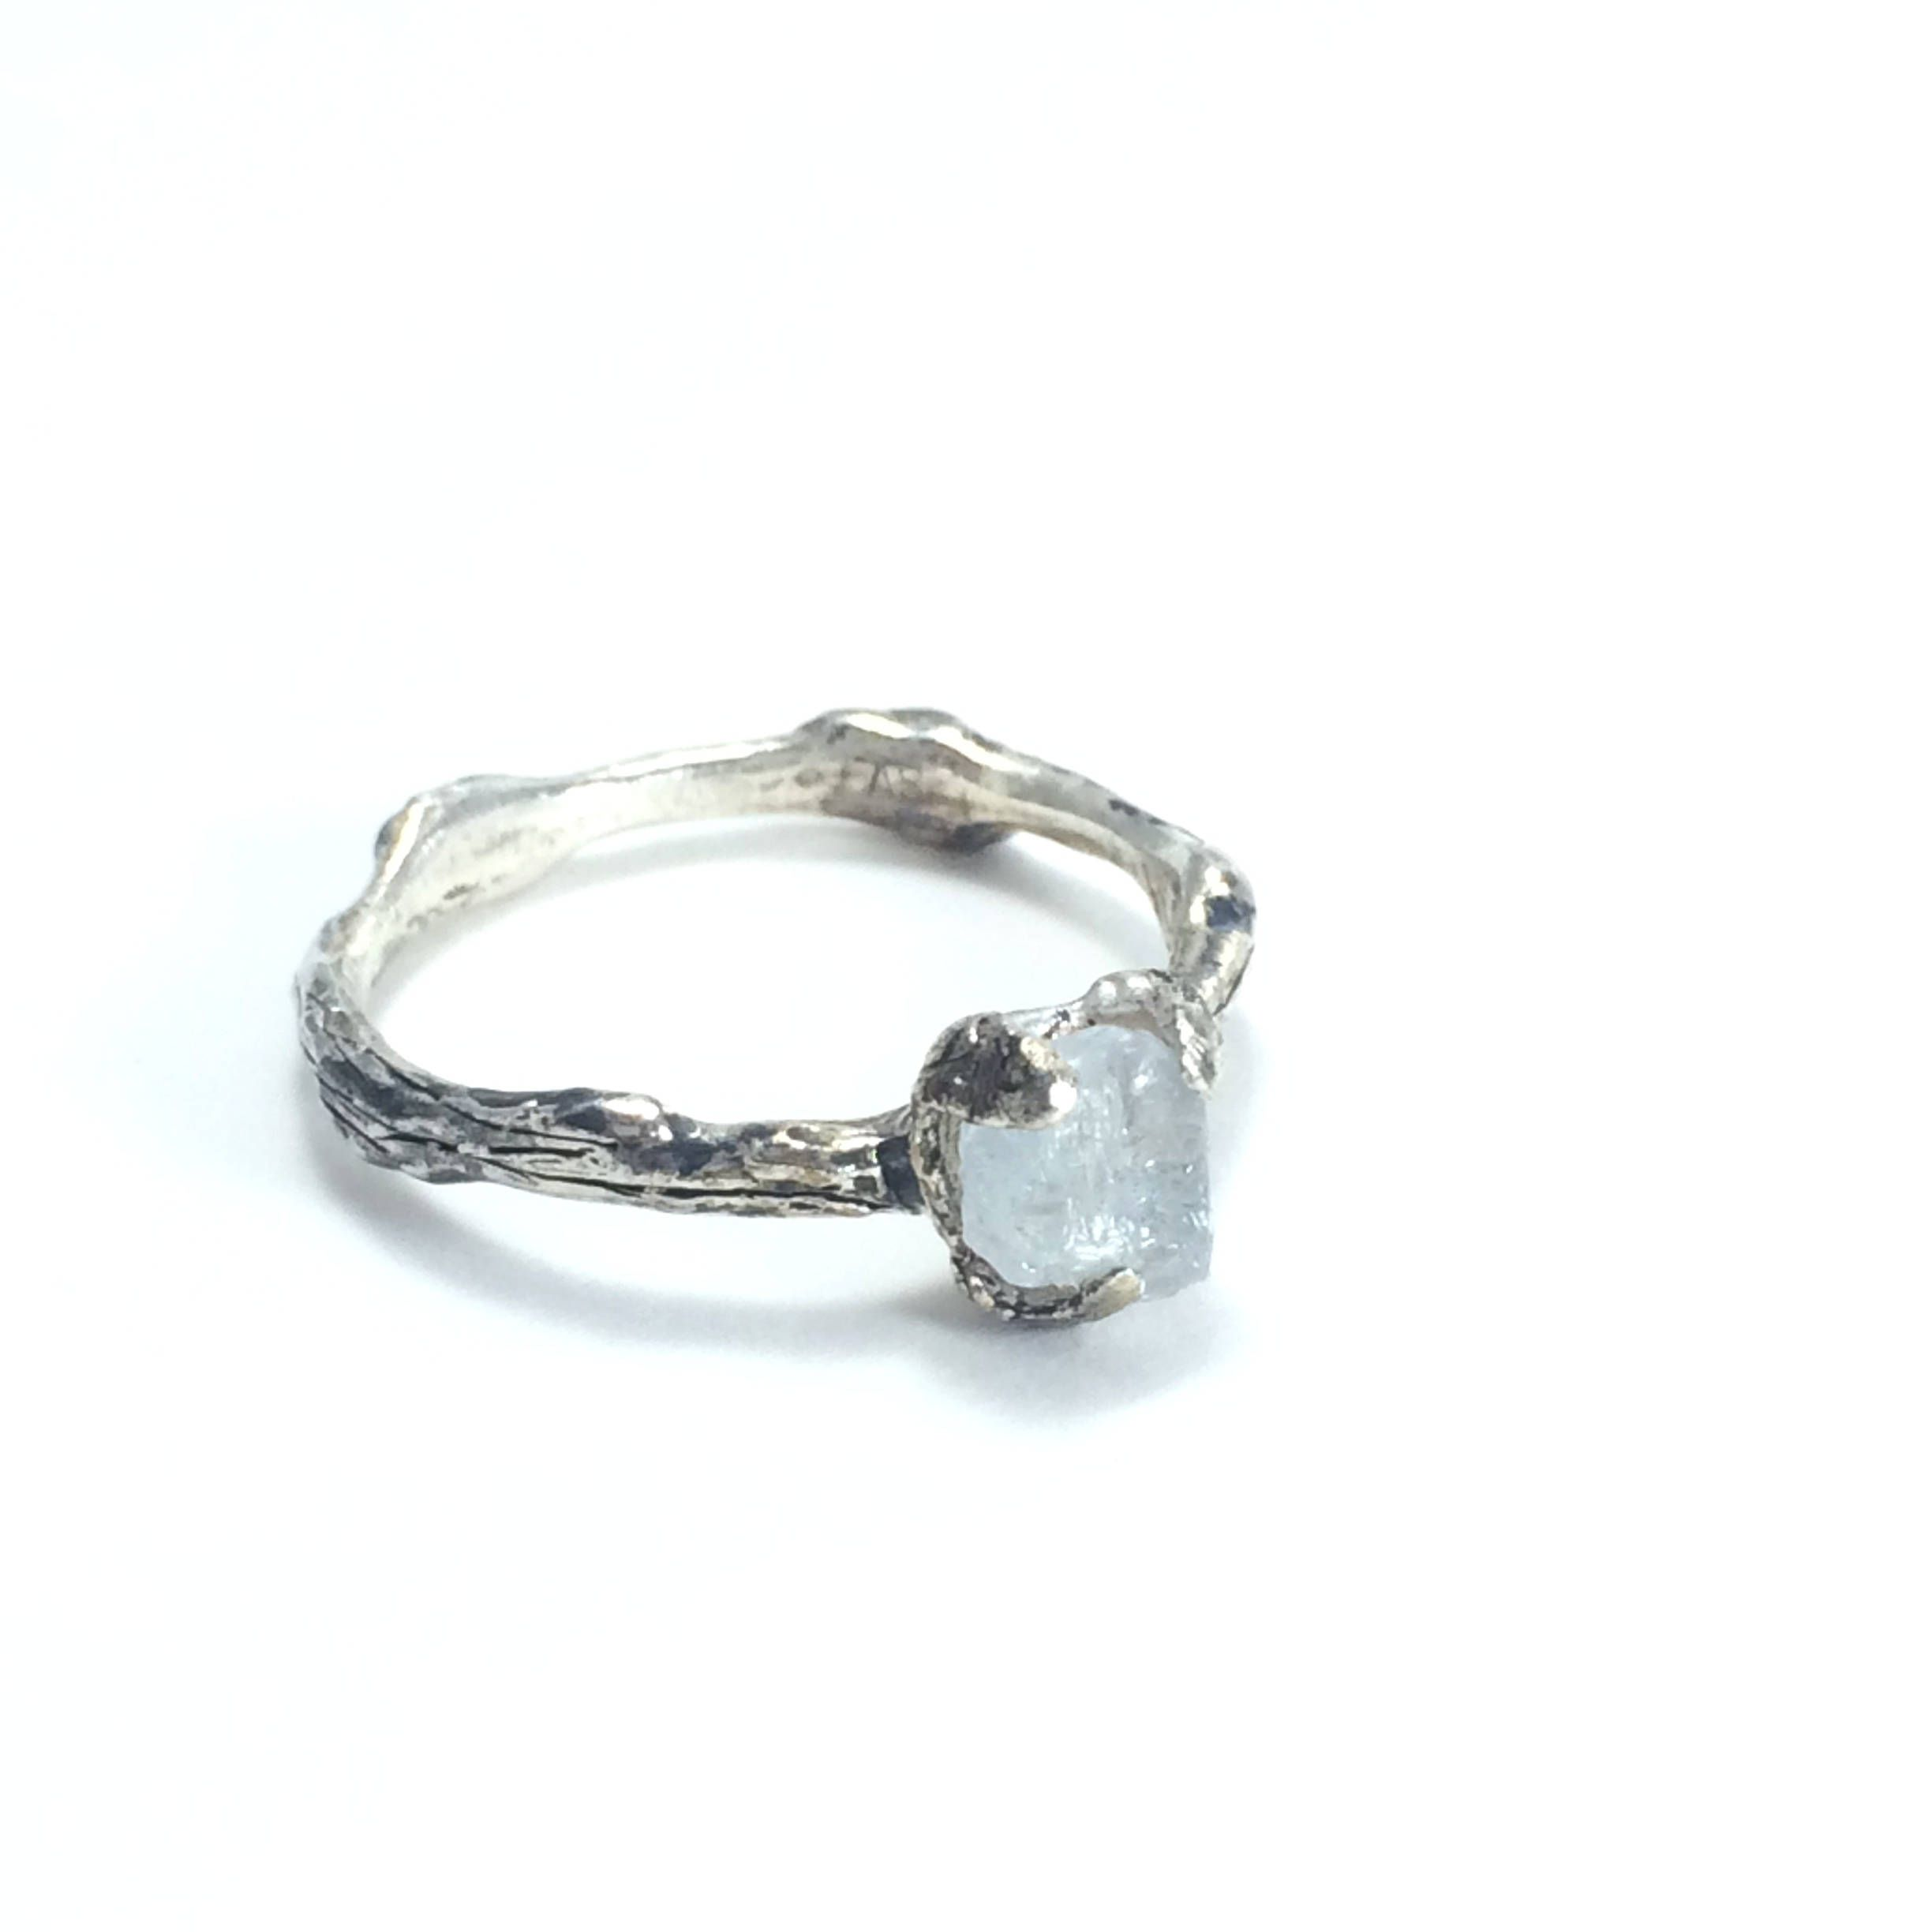 twig engagement ring nature engagement ring raw stone